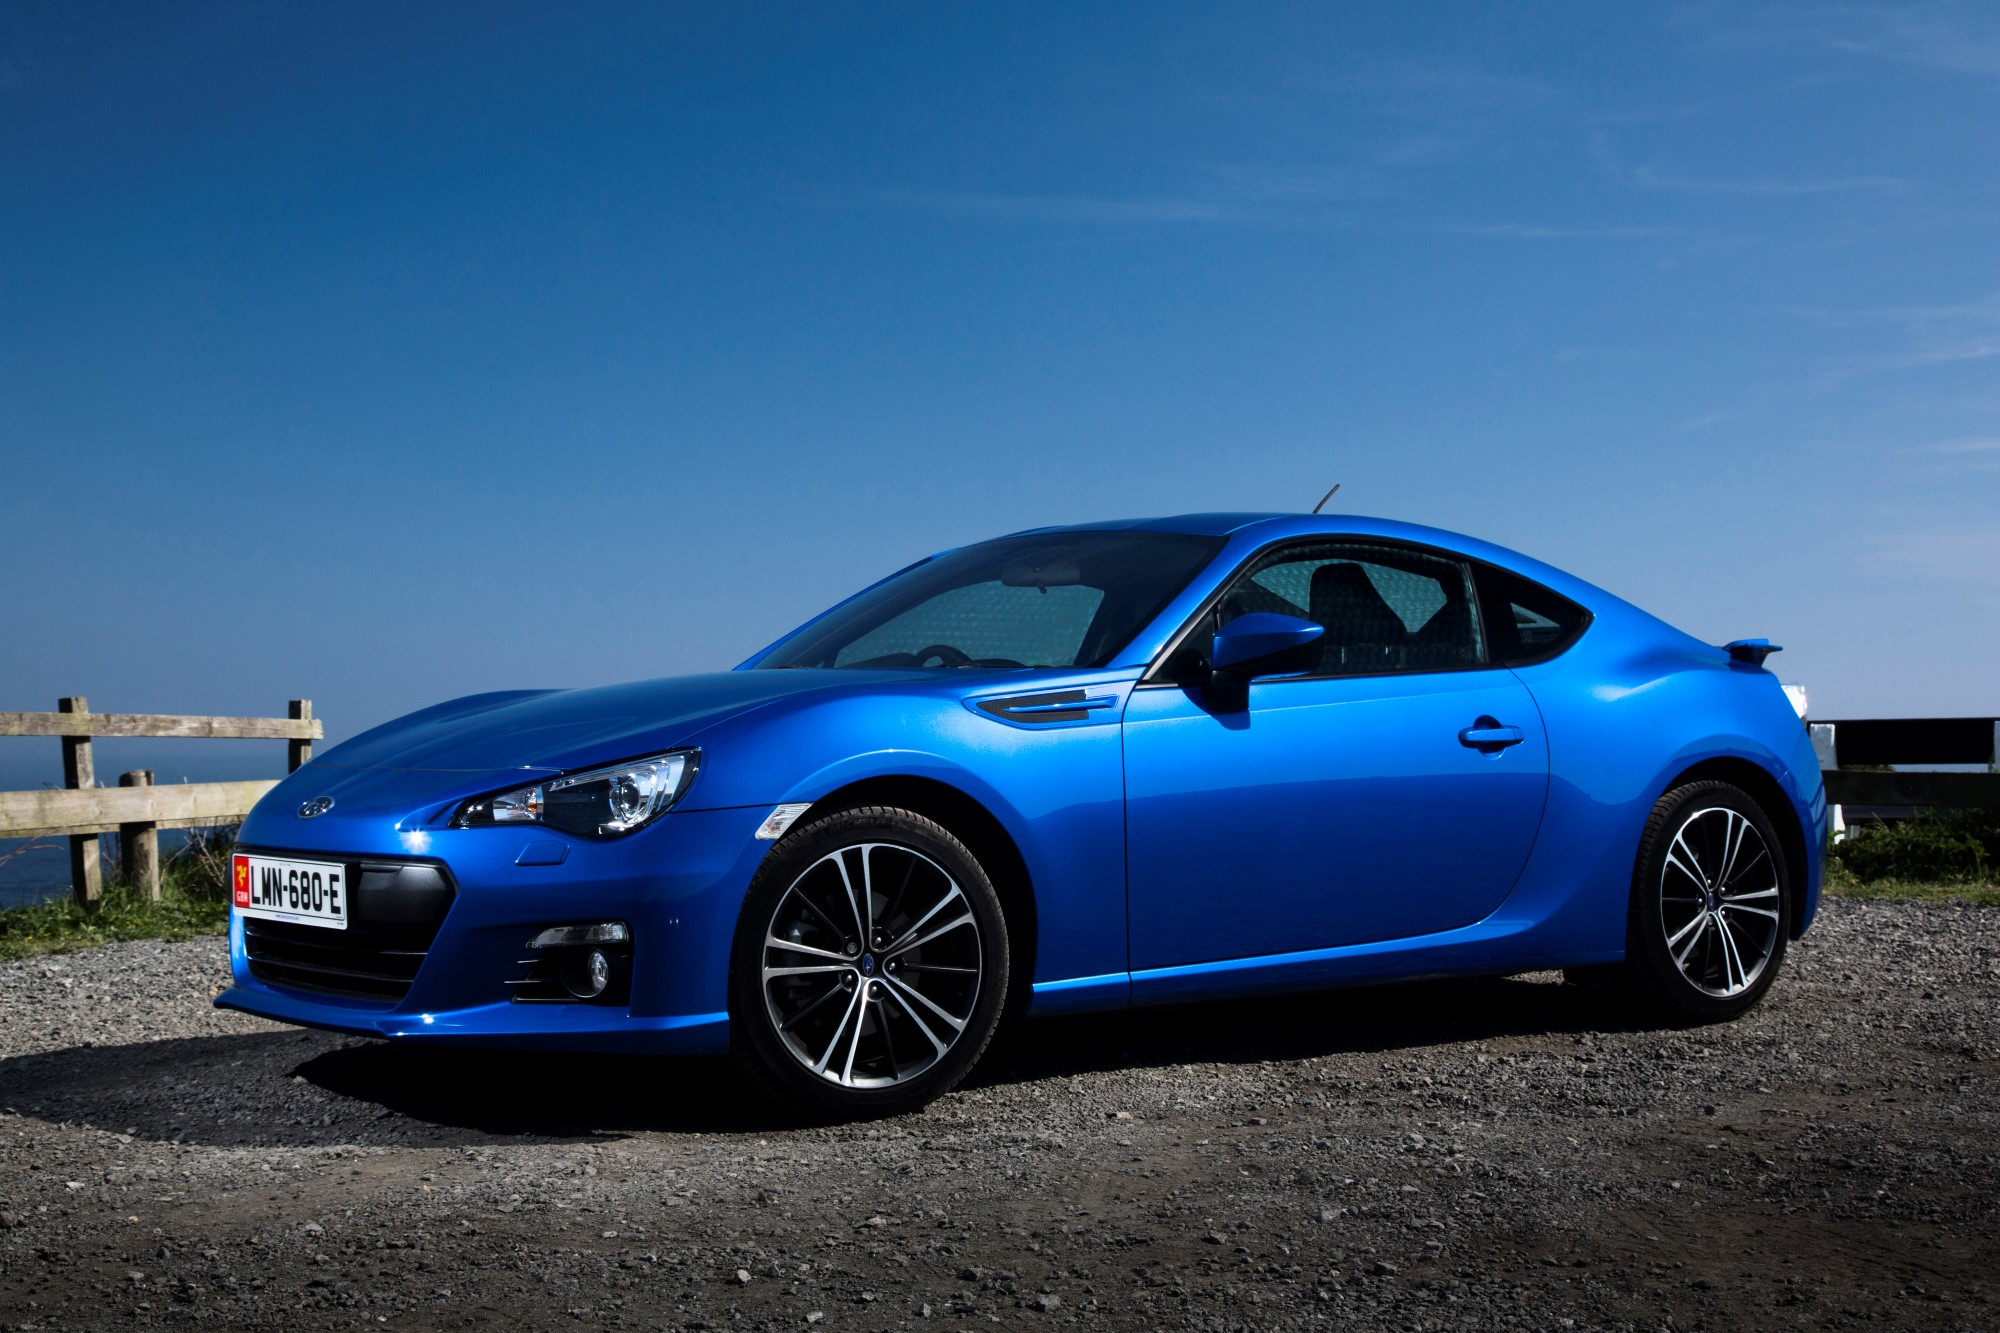 new and used subaru brz prices photos reviews specs the car connection. Black Bedroom Furniture Sets. Home Design Ideas